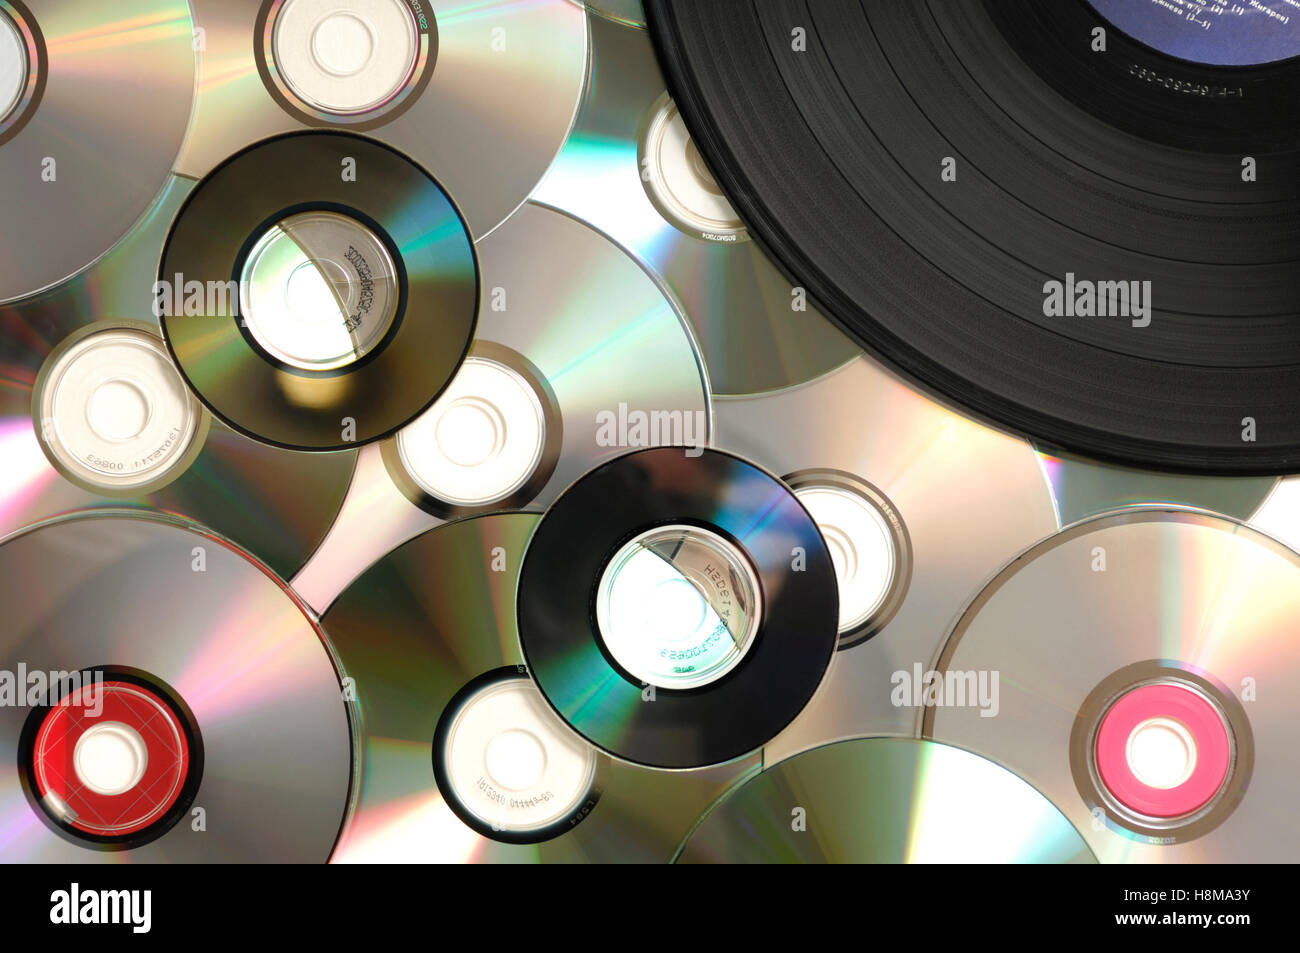 Compact discs and vinyl record, abstract background - Stock Image